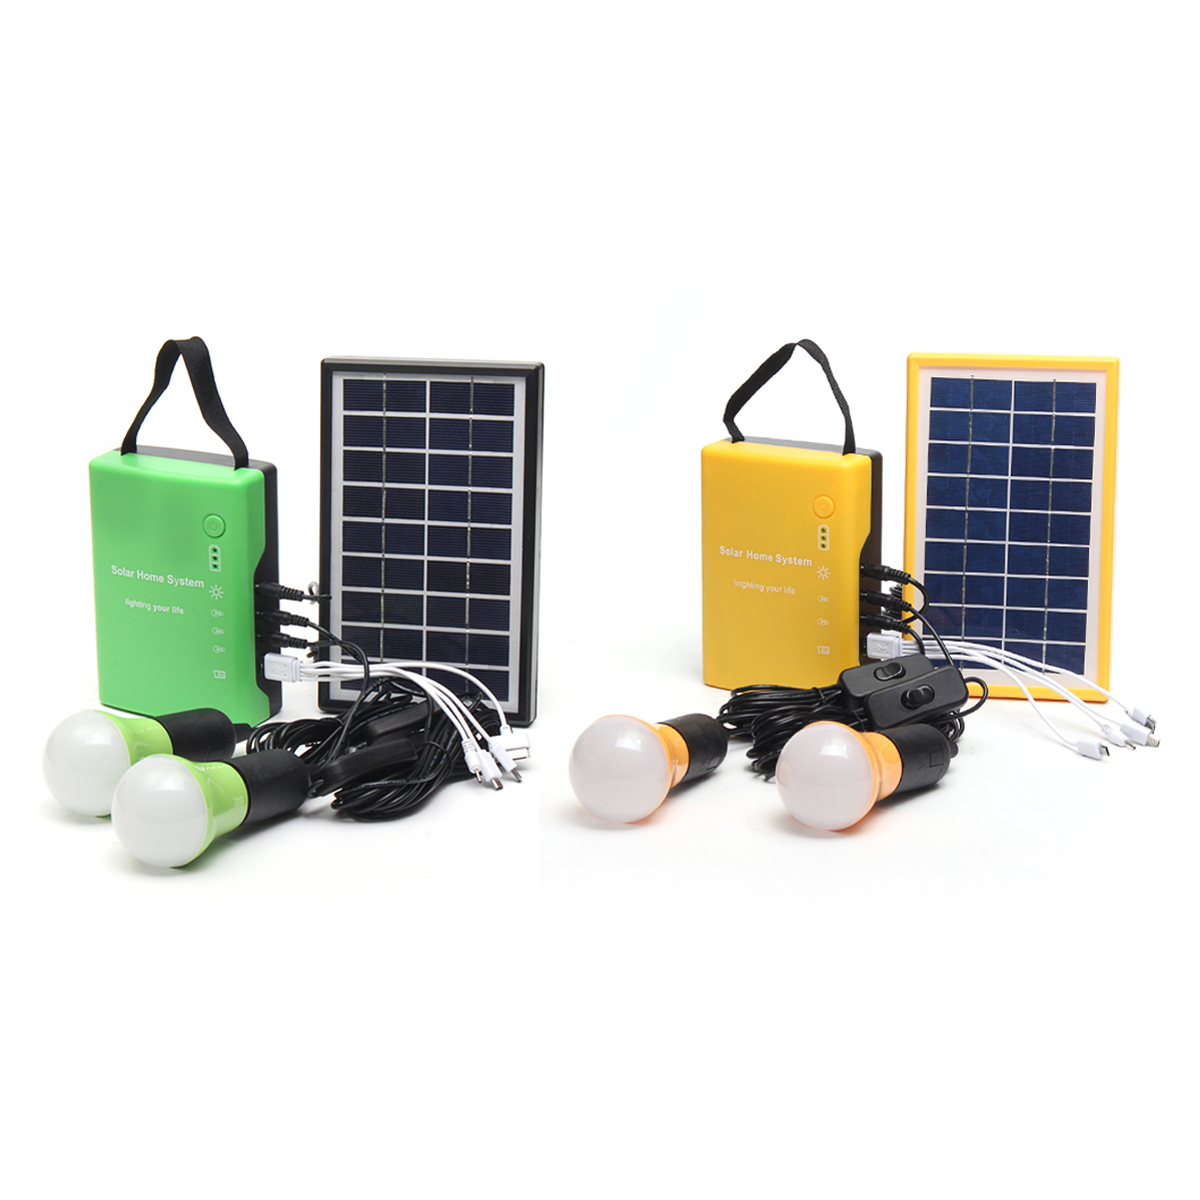 Portable Solar Panel Power Generator LED Light USB Cable Charge Emergency System Kit 4.5Ah/6V batteries Energy for Home Outdoor portable home outdoor solar panels charging generator power generation system 6v 3w lead acid batteries energy usb charger